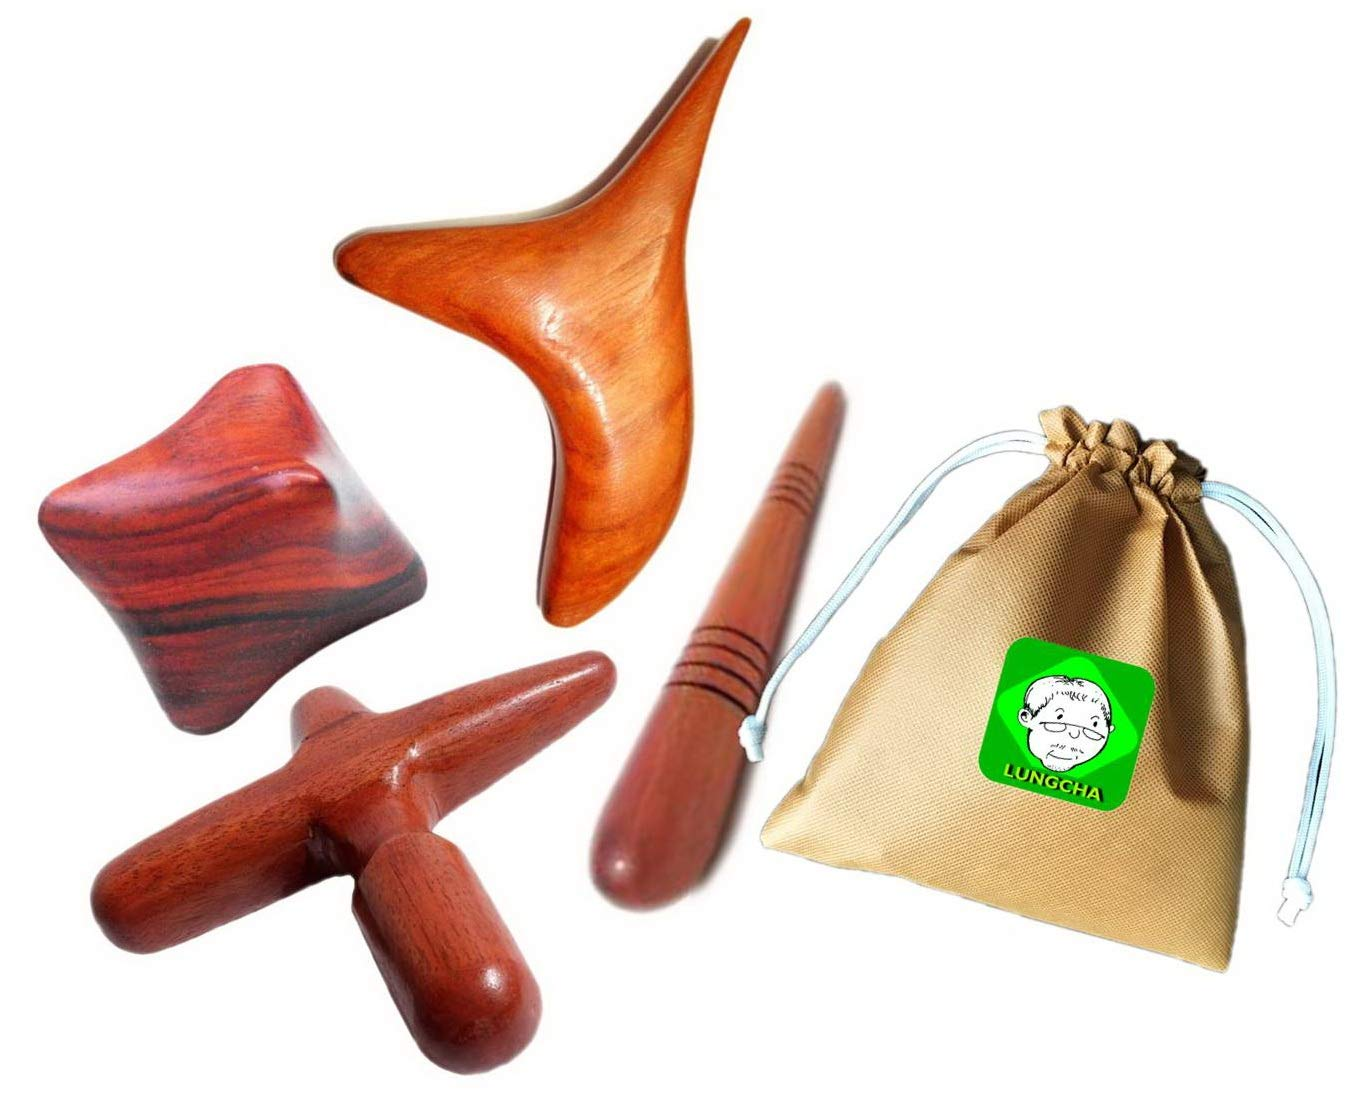 Lungcha Traditional Thai Massage Wooden Stick Tool, Reflexology, Acupuncture Point Gua Sha for Body, Foot, Hand, Head, Face, Nose, Neck, Back, Waist Massage (Set 4 Body Hand Foot Massage) by Lungcha